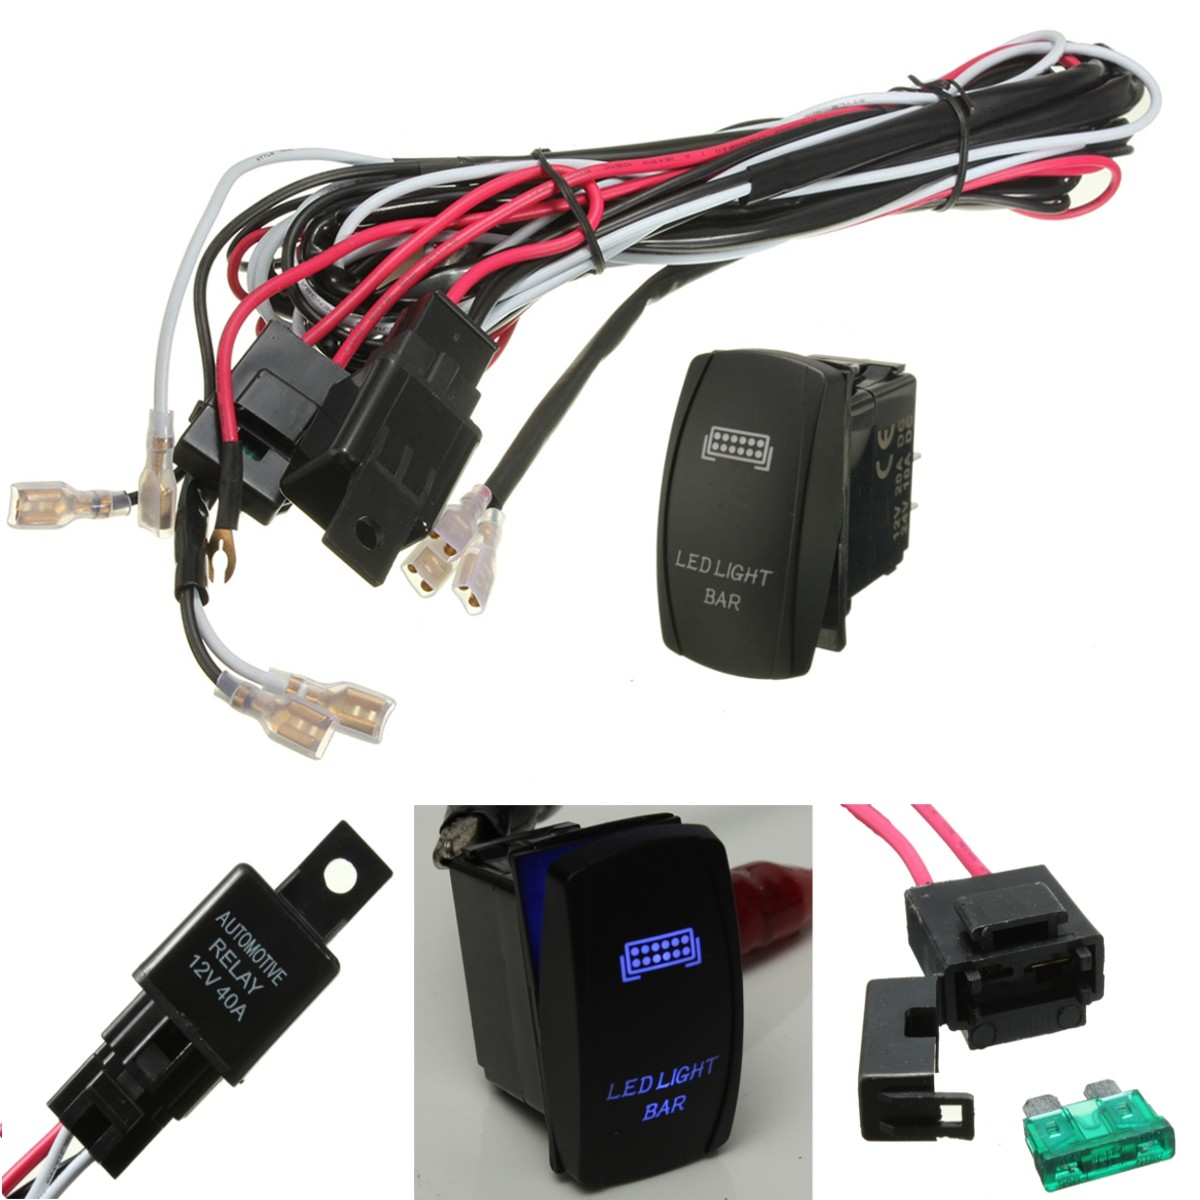 led light bar on off rocker switch wiring harness kit 40a relay image